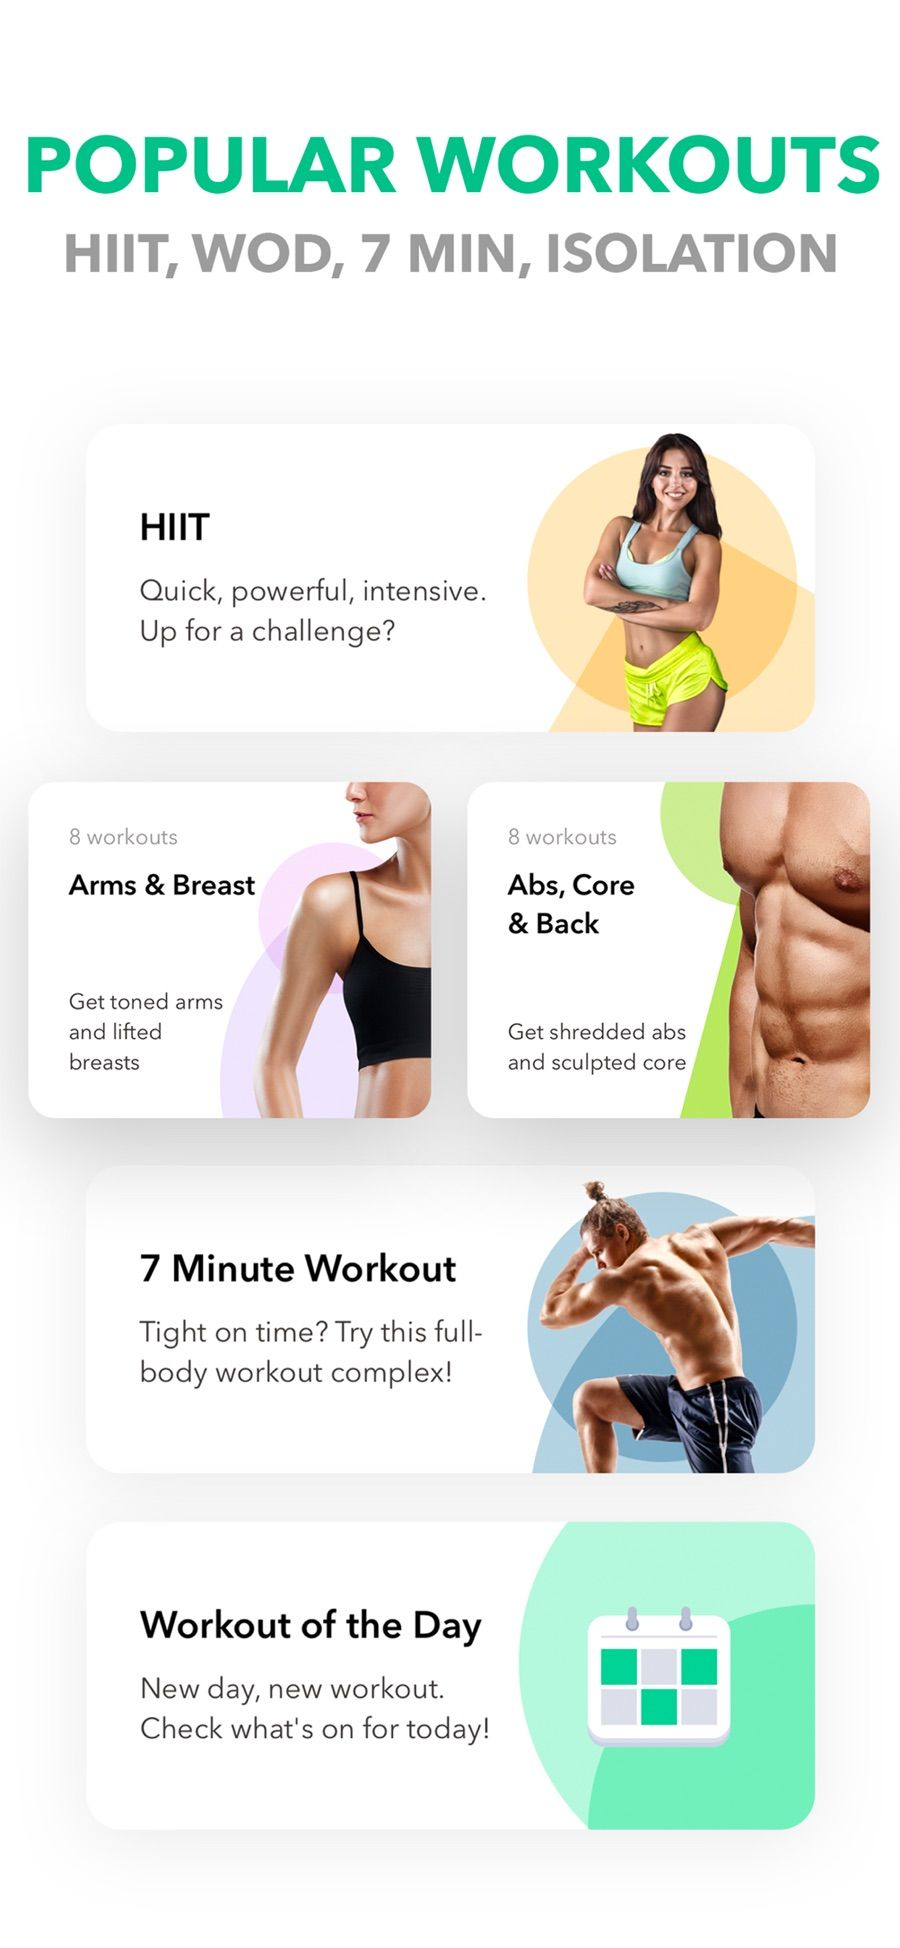 My Fitness Workout by GetFit on the App Store Workout